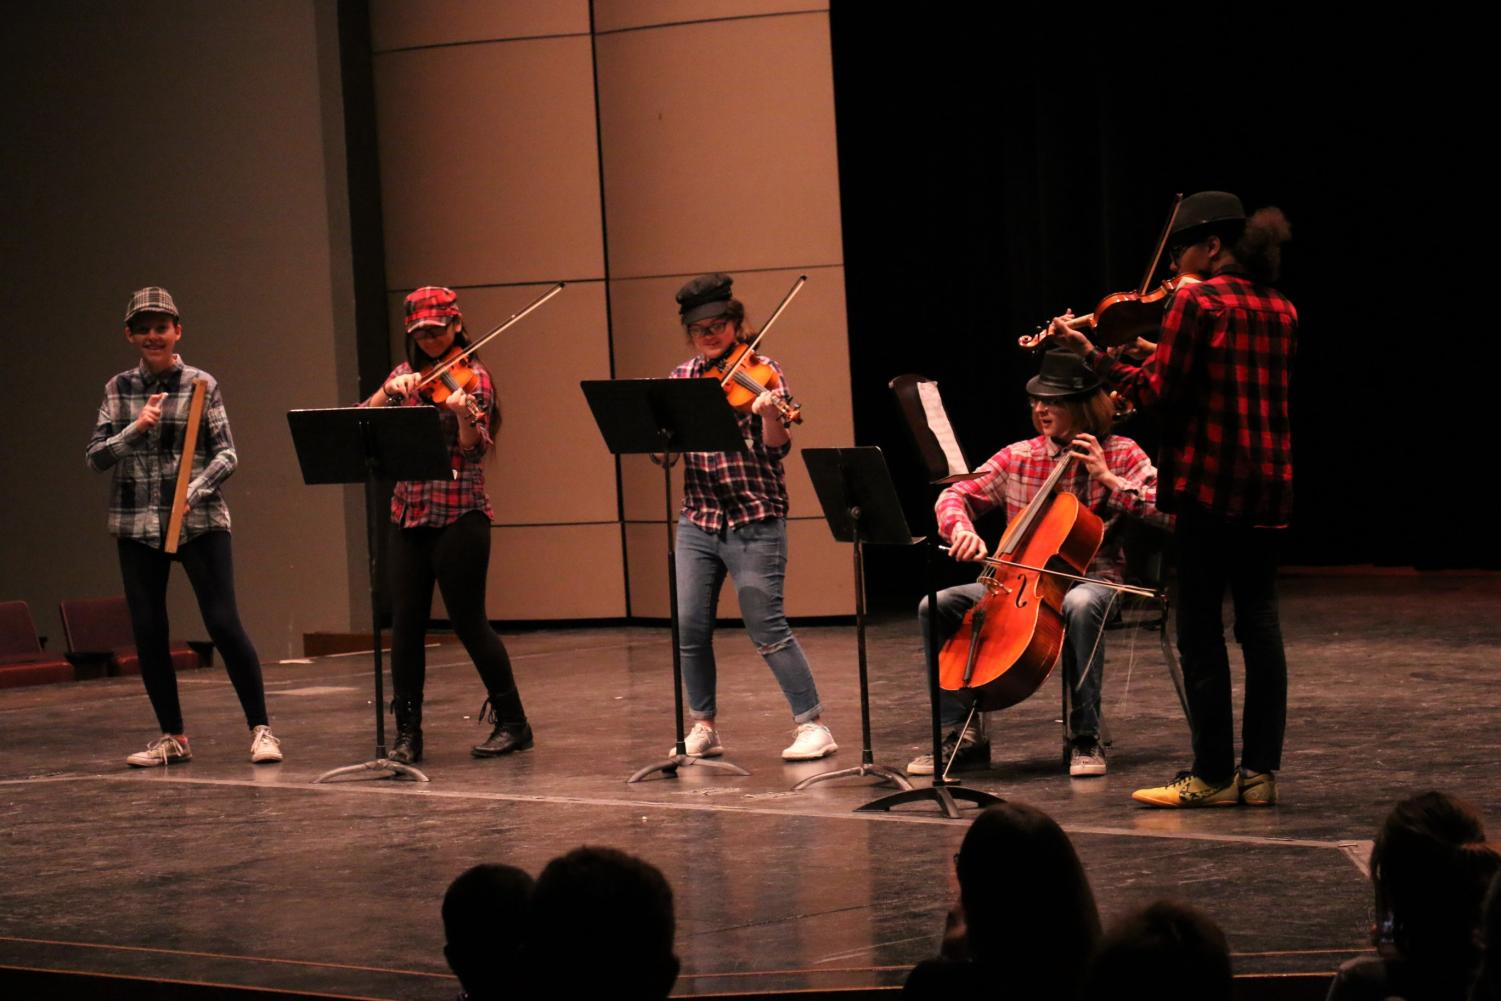 Instrumental group Fedoras and Flannels won second place from the audience.